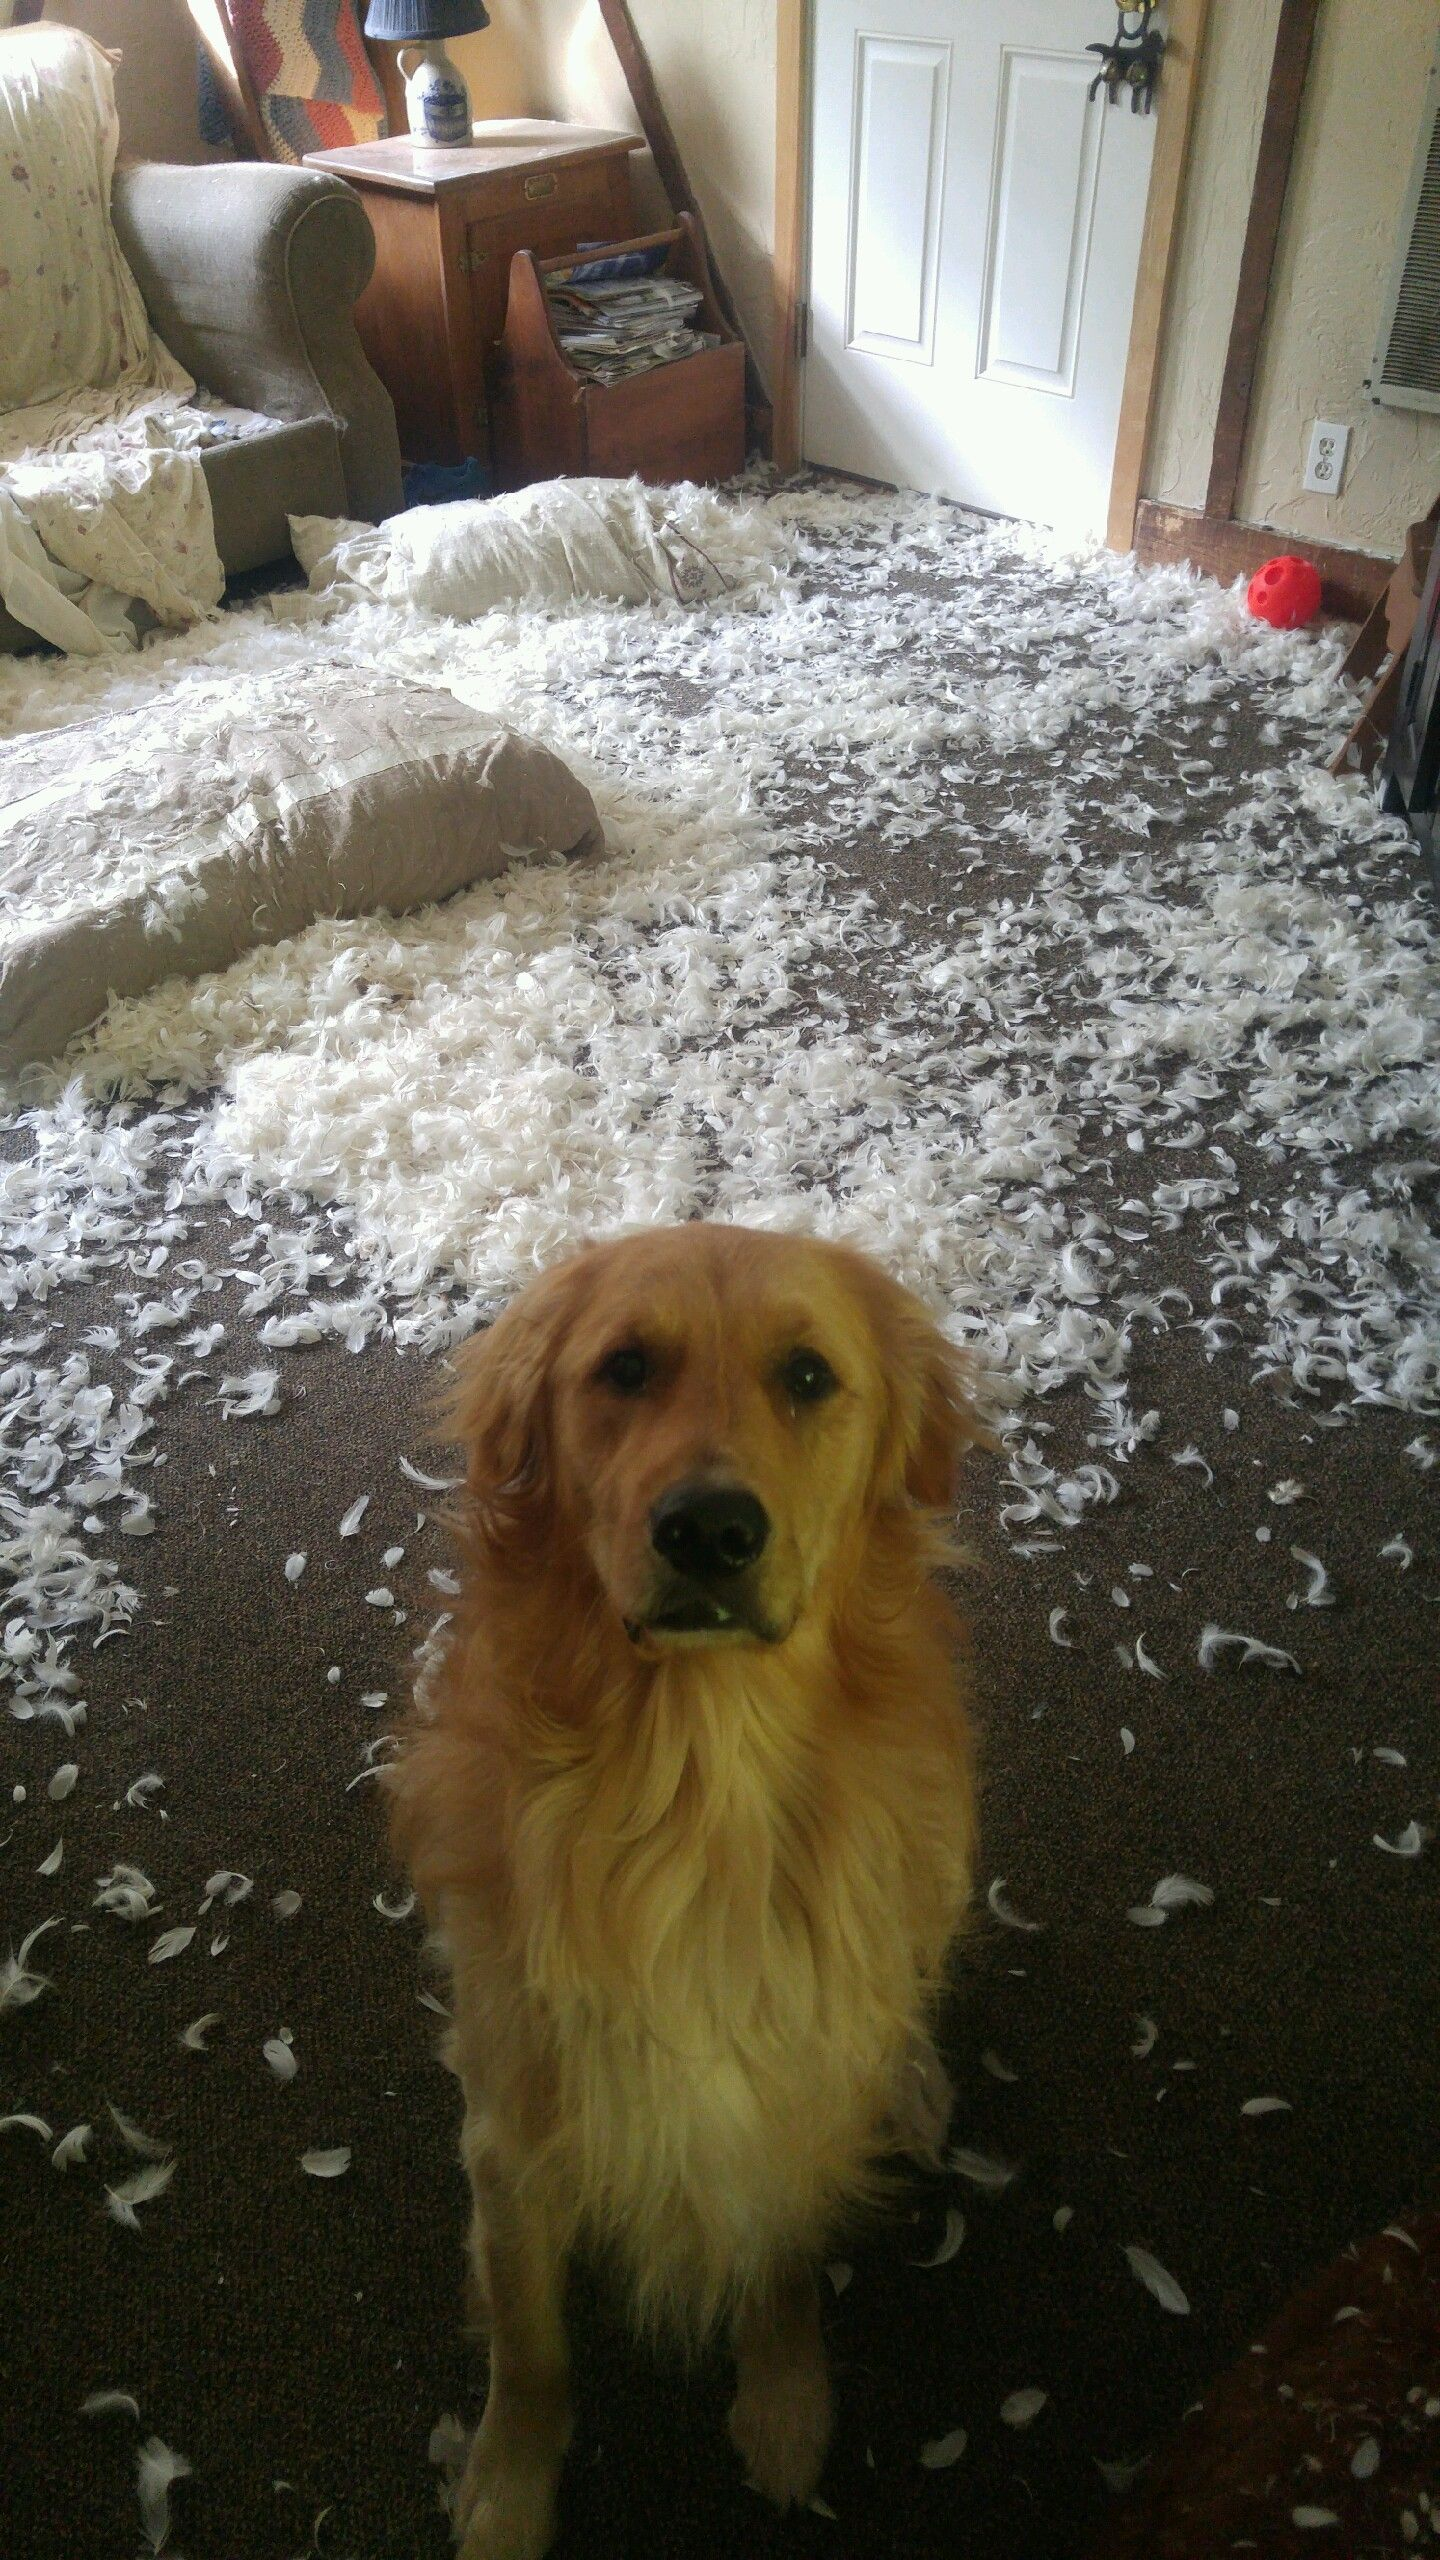 Will The Mystery Be Solved Which Of These Three Golden Retrievers Do You Think Is The Cause Of The Feather Mess Golden Retriever Dogs Funny Animals